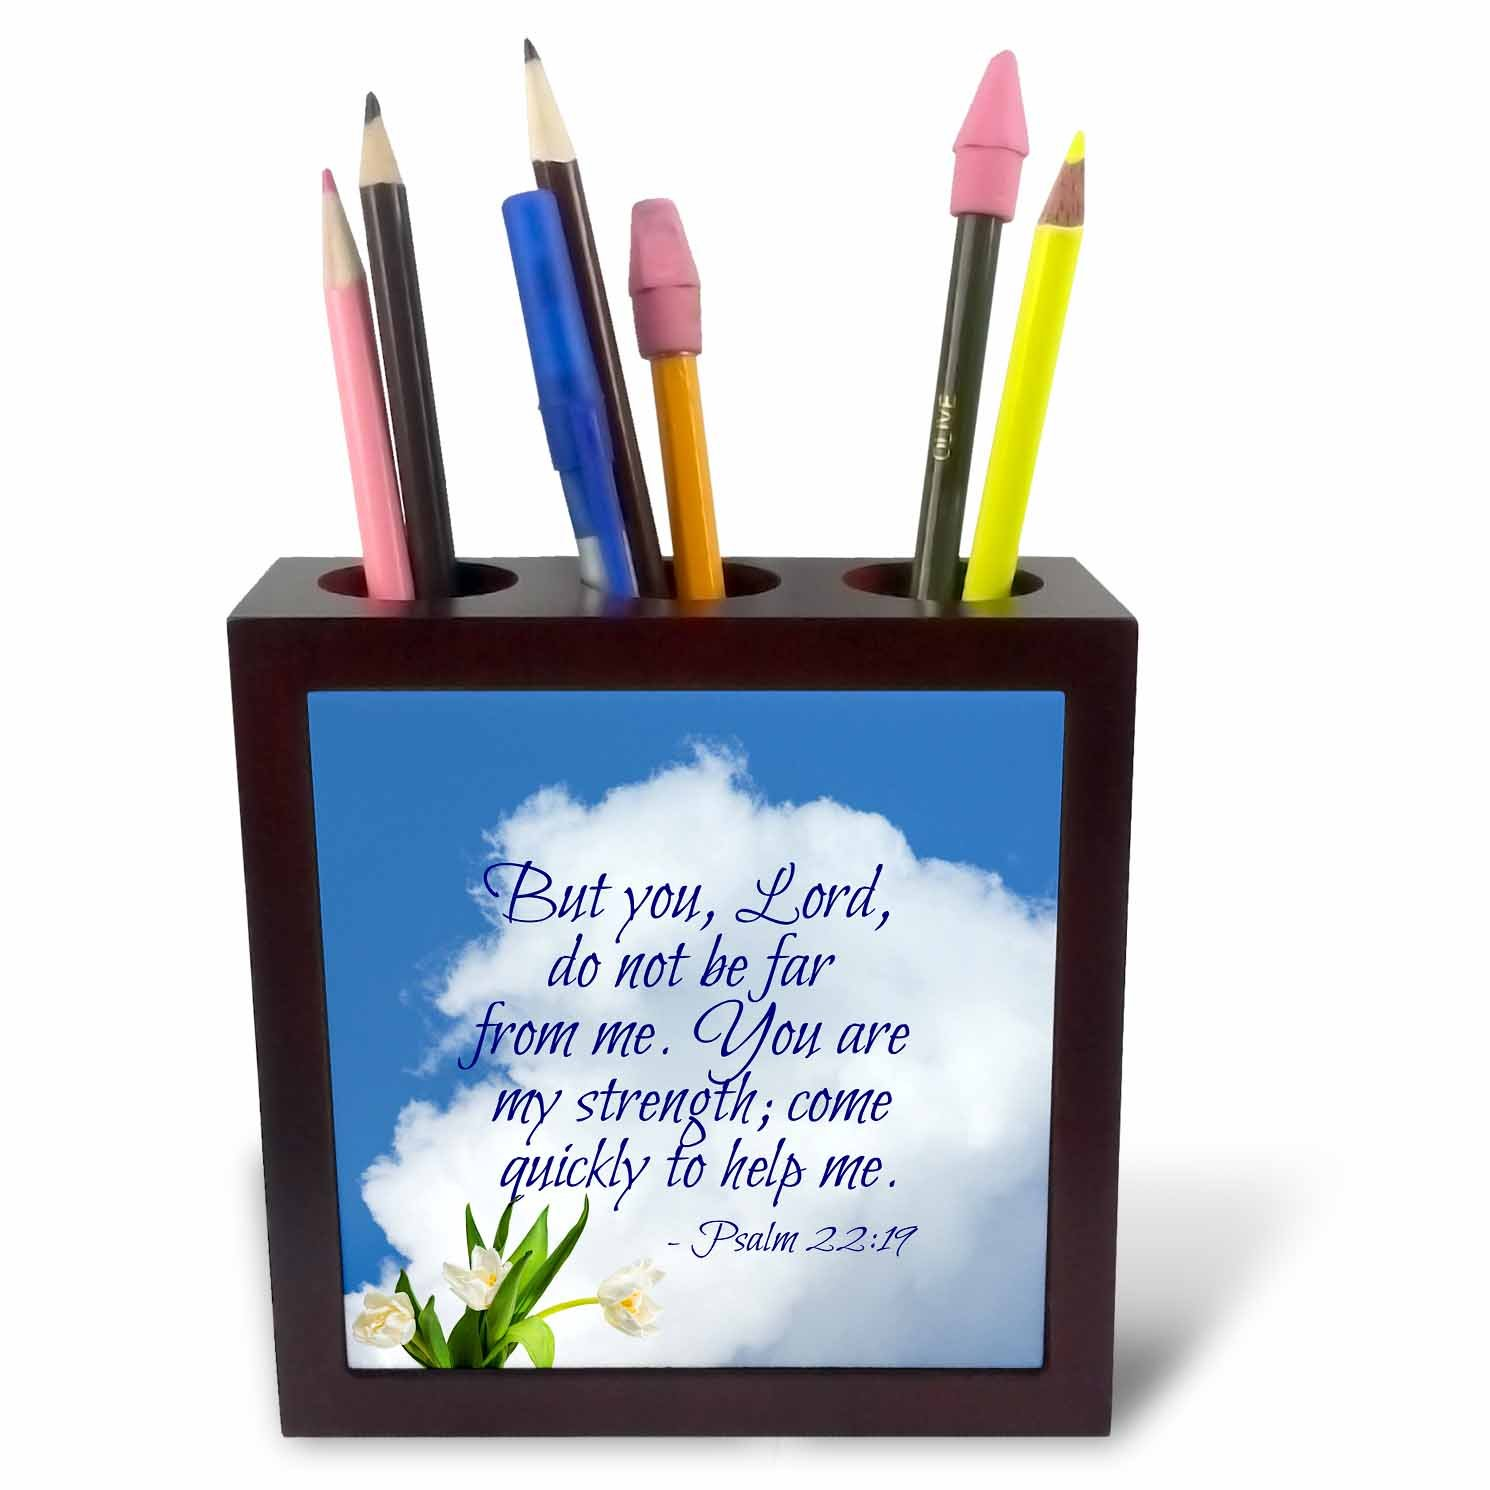 3dRose Alexis Design - Quotes Religion - Bible Quotes - Lord not be far from me. White Cloud, Tulips - 5 inch Tile Pen Holder (ph_280814_1) by 3dRose